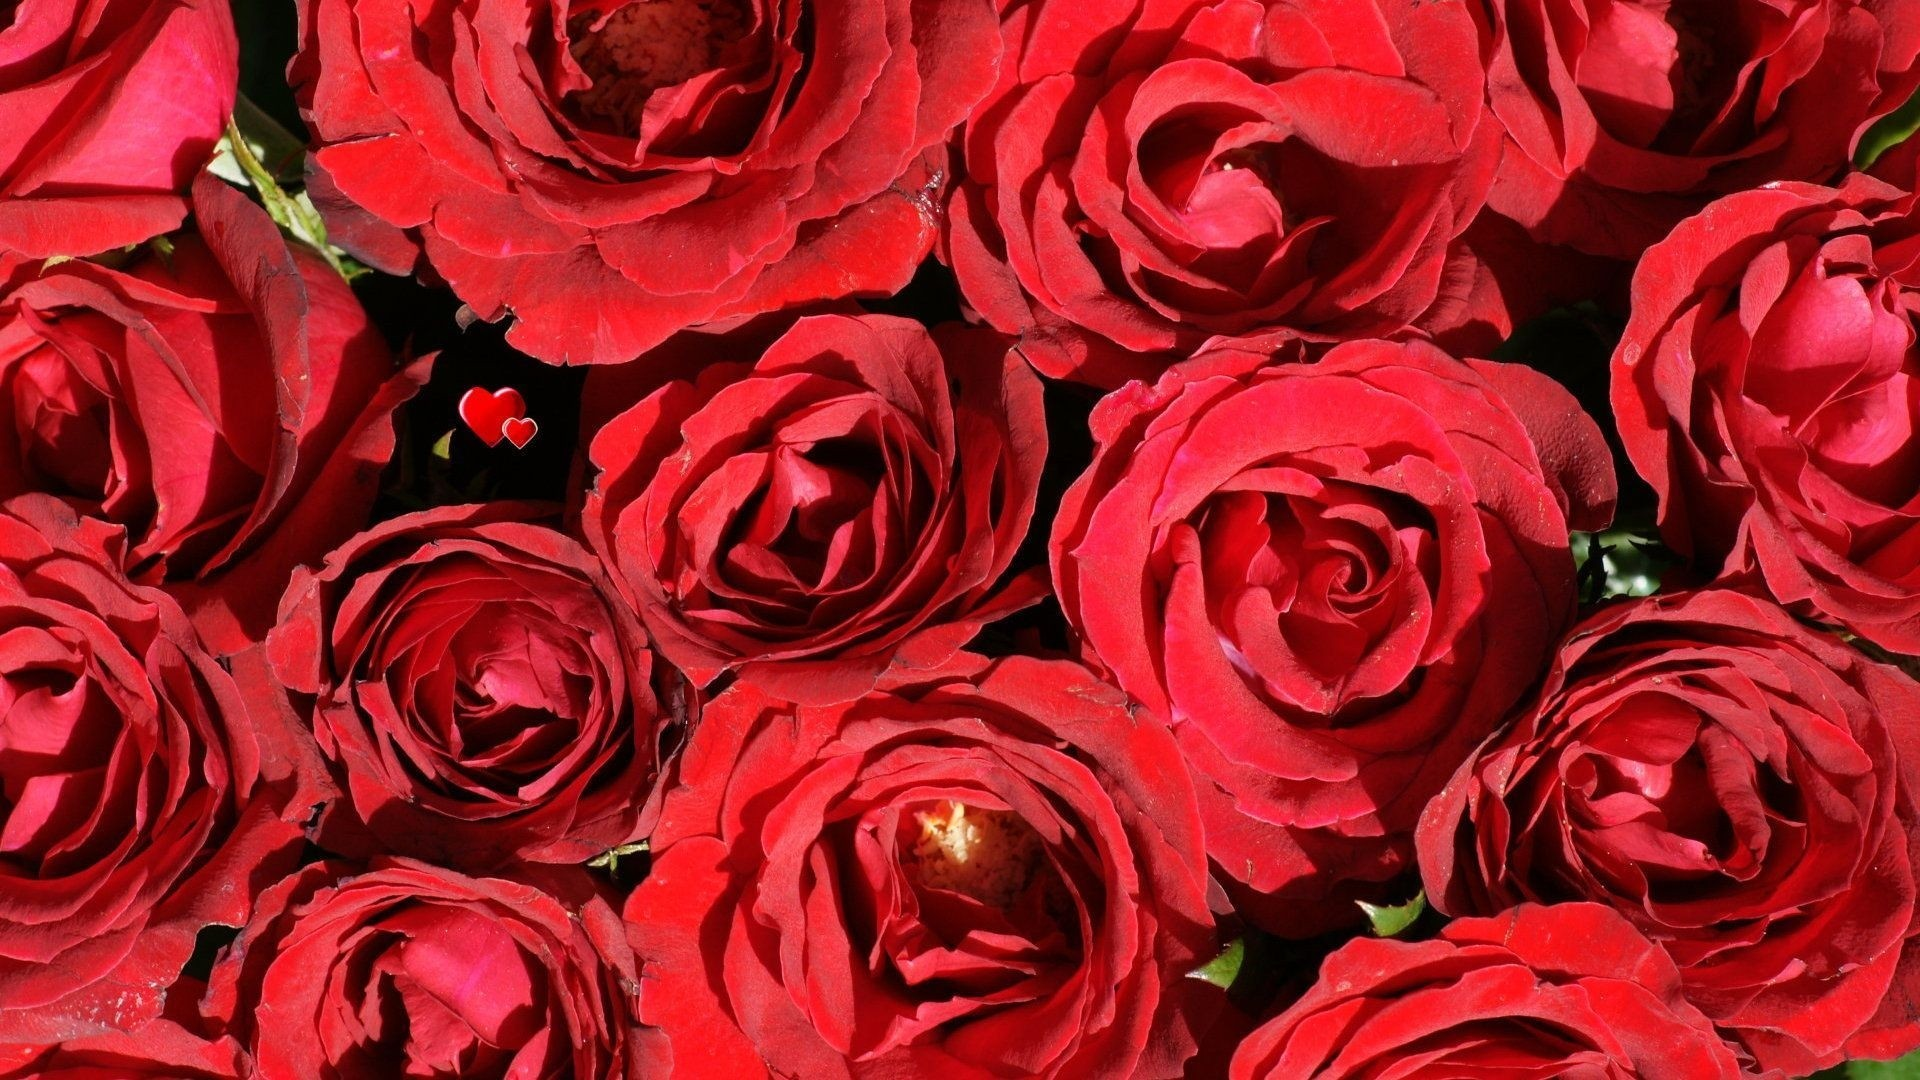 Red Rose computer wallpaper